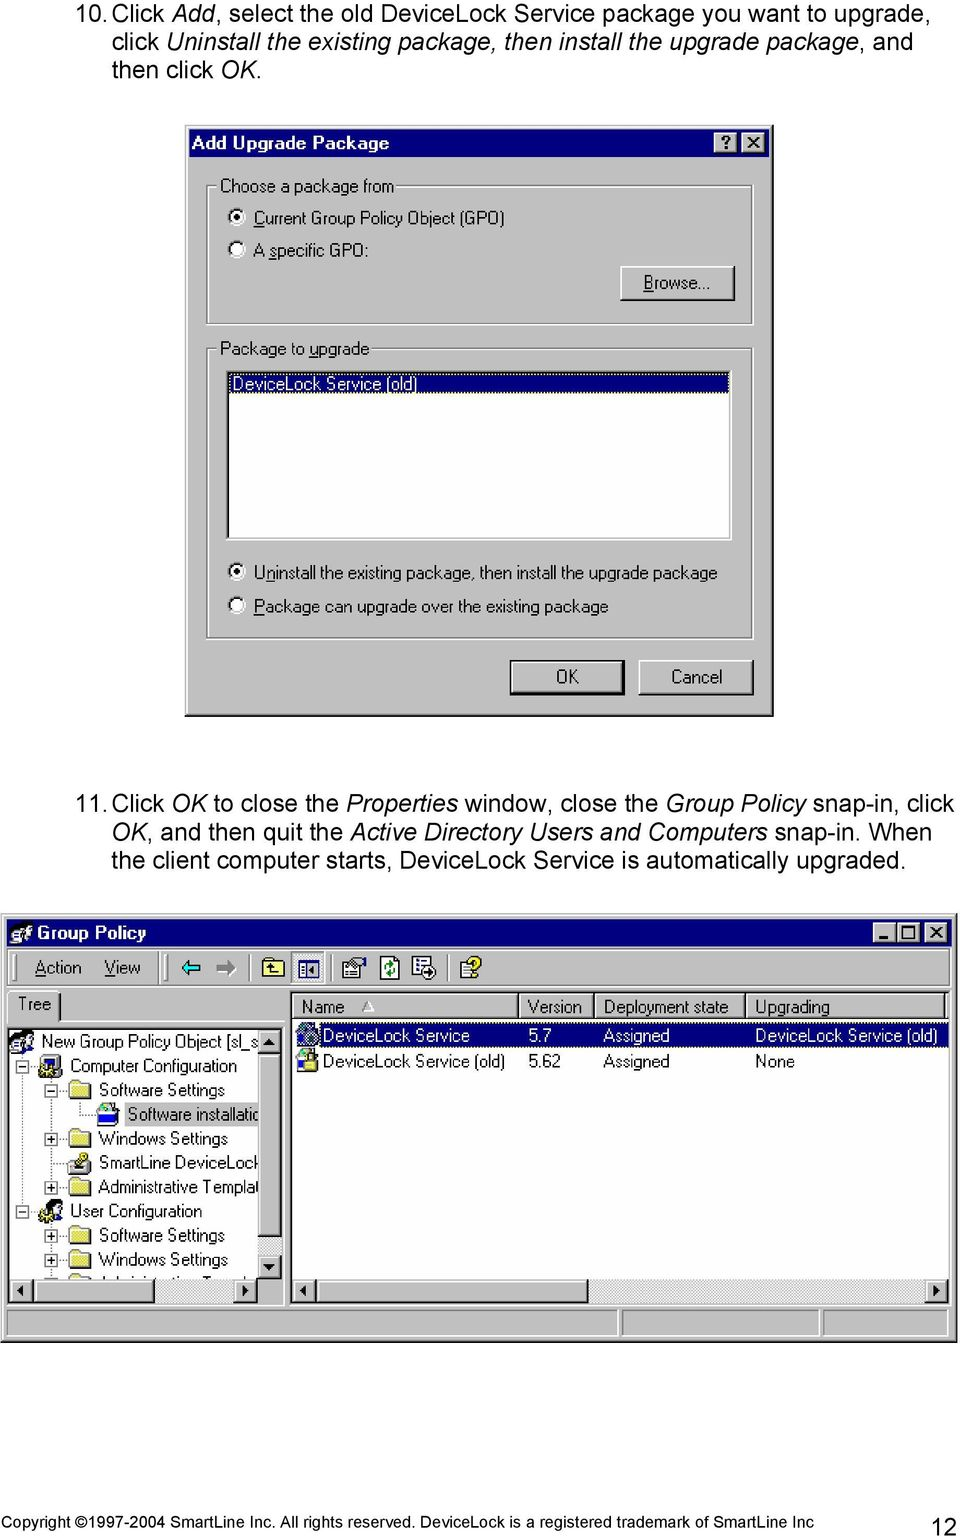 Click OK to close the Properties window, close the Group Policy snap-in, click OK, and then quit the